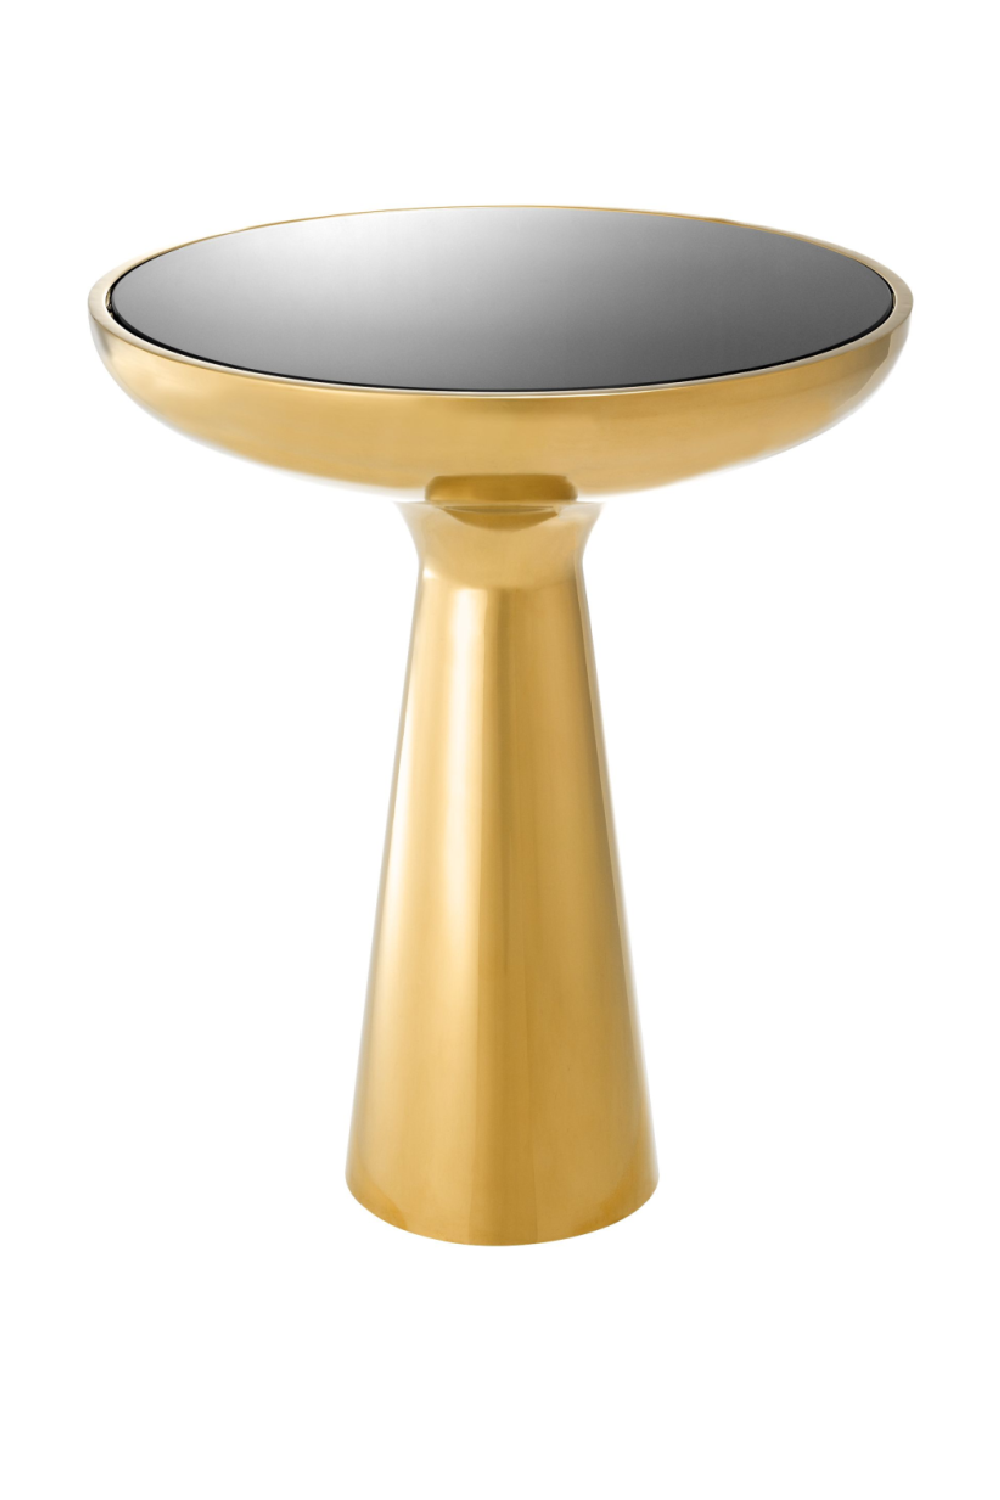 Gold Tower Side Table | Eichholtz Lindos Low | #1 Eichholtz Retailer